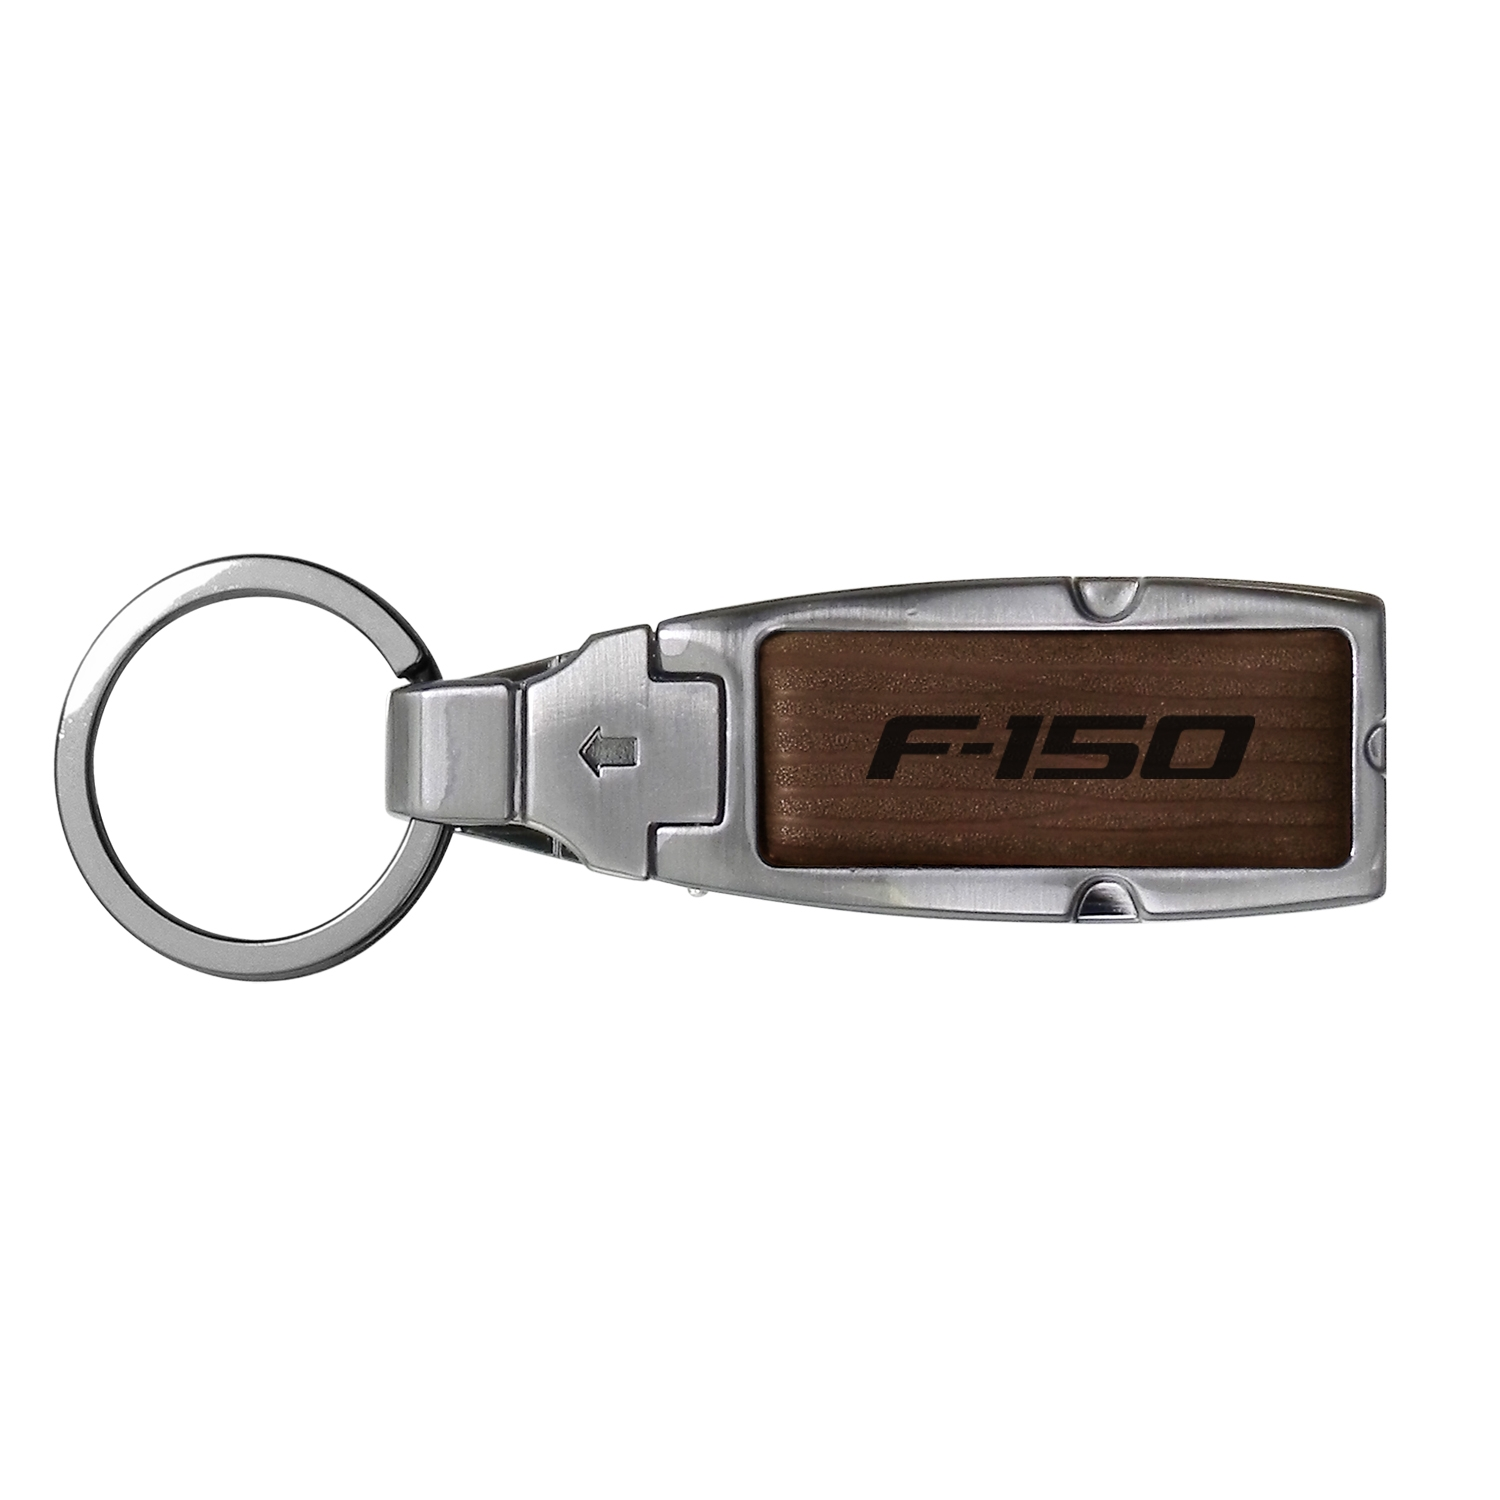 Ford F-150 Brown Leather Detachable Ring Black Metal Key Chain